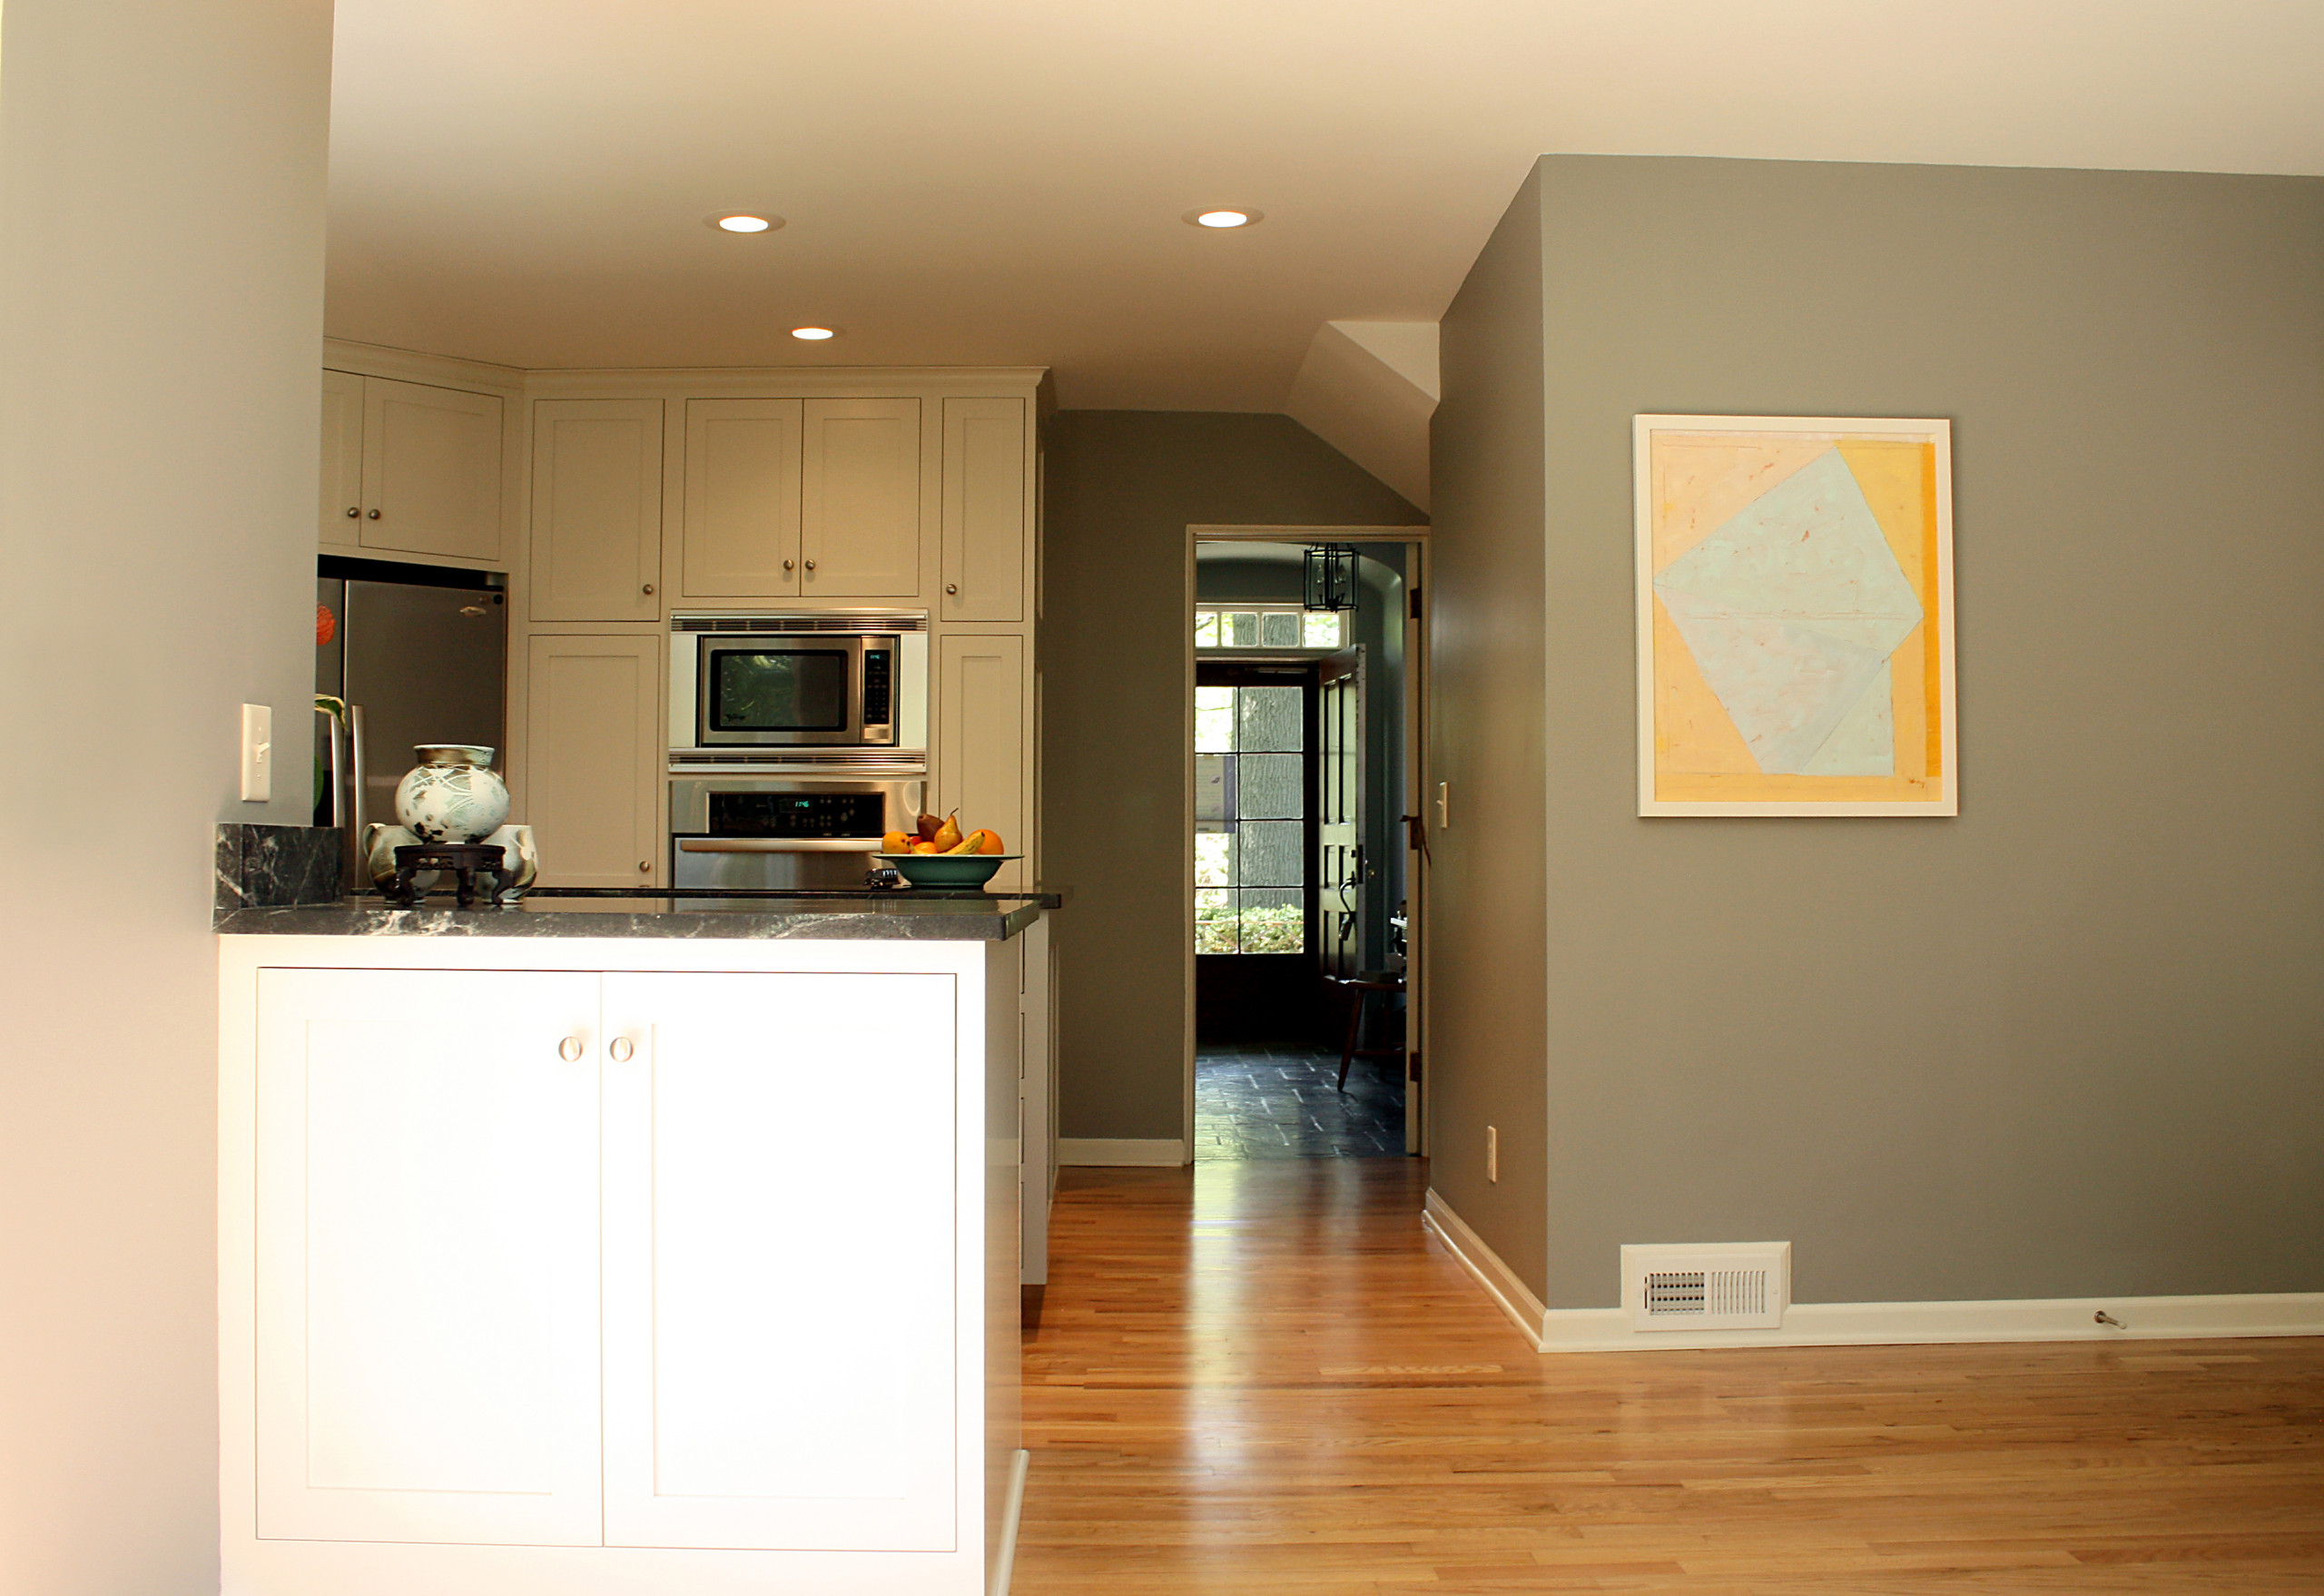 2012 Parade of Remodeled Homes